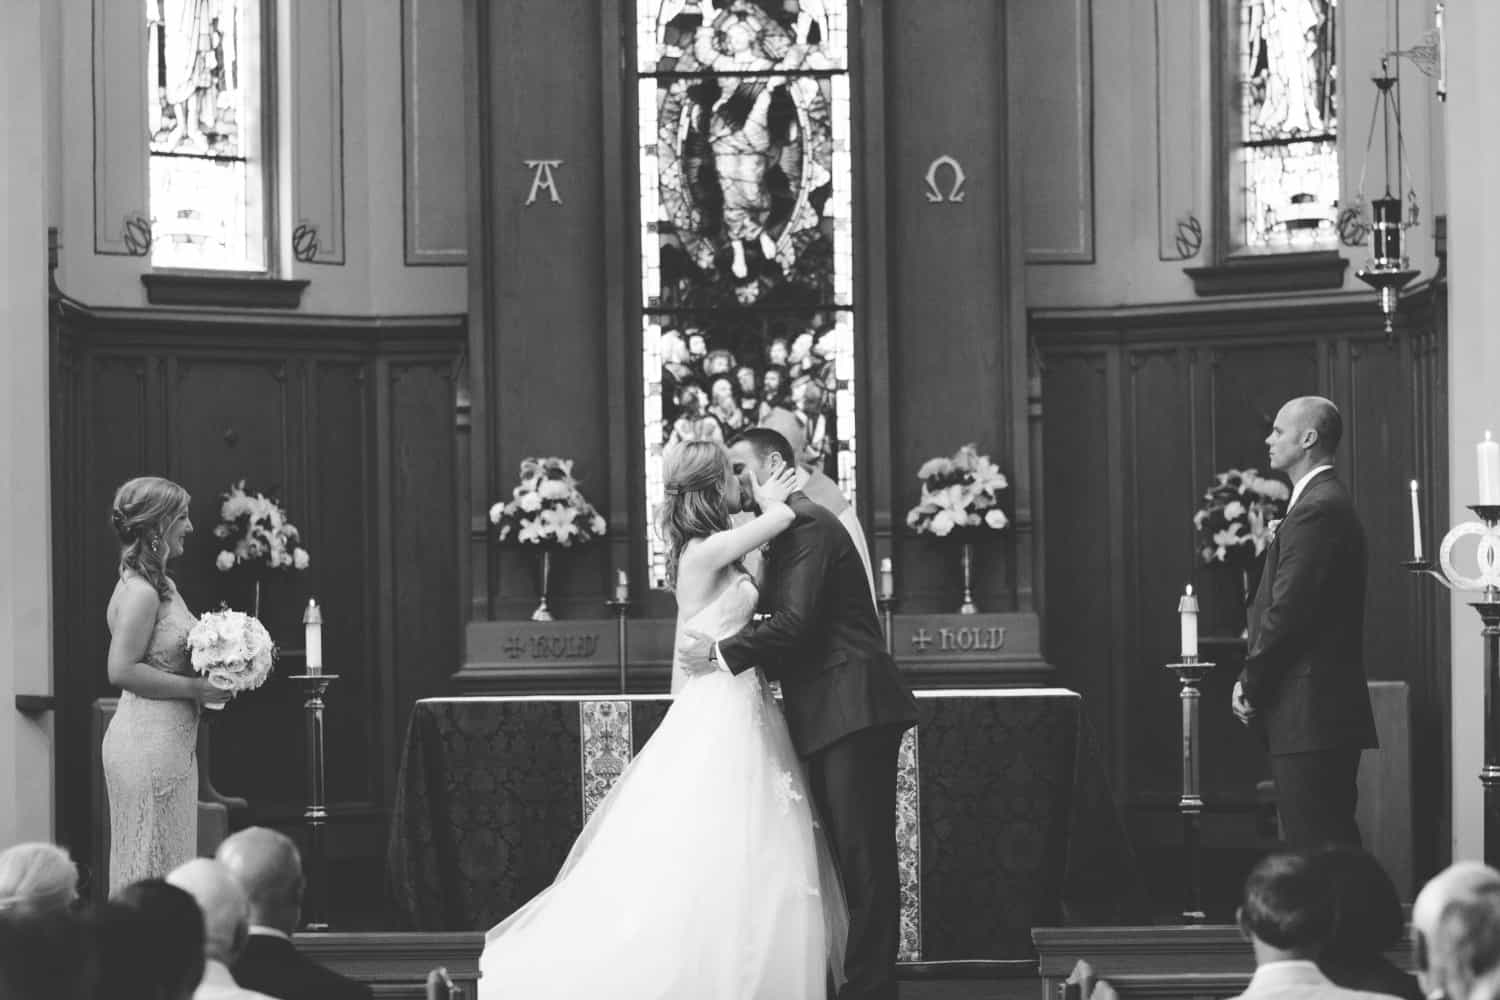 RachelEvelynPhotography_WeddingPhotographer17